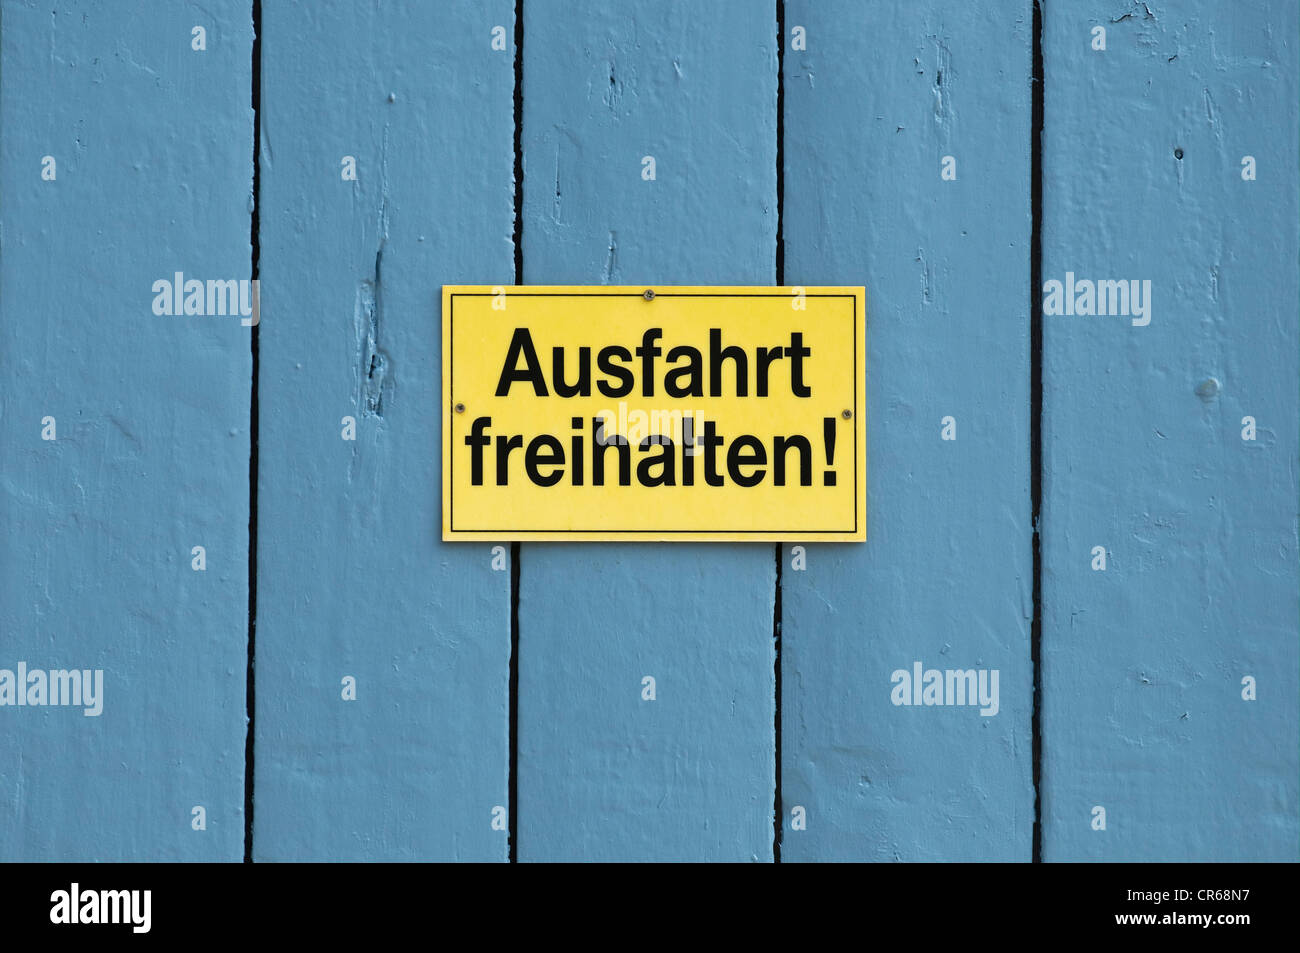 Sign, Ausfahrt freihalten or keep exit clear, on a blue door - Stock Image